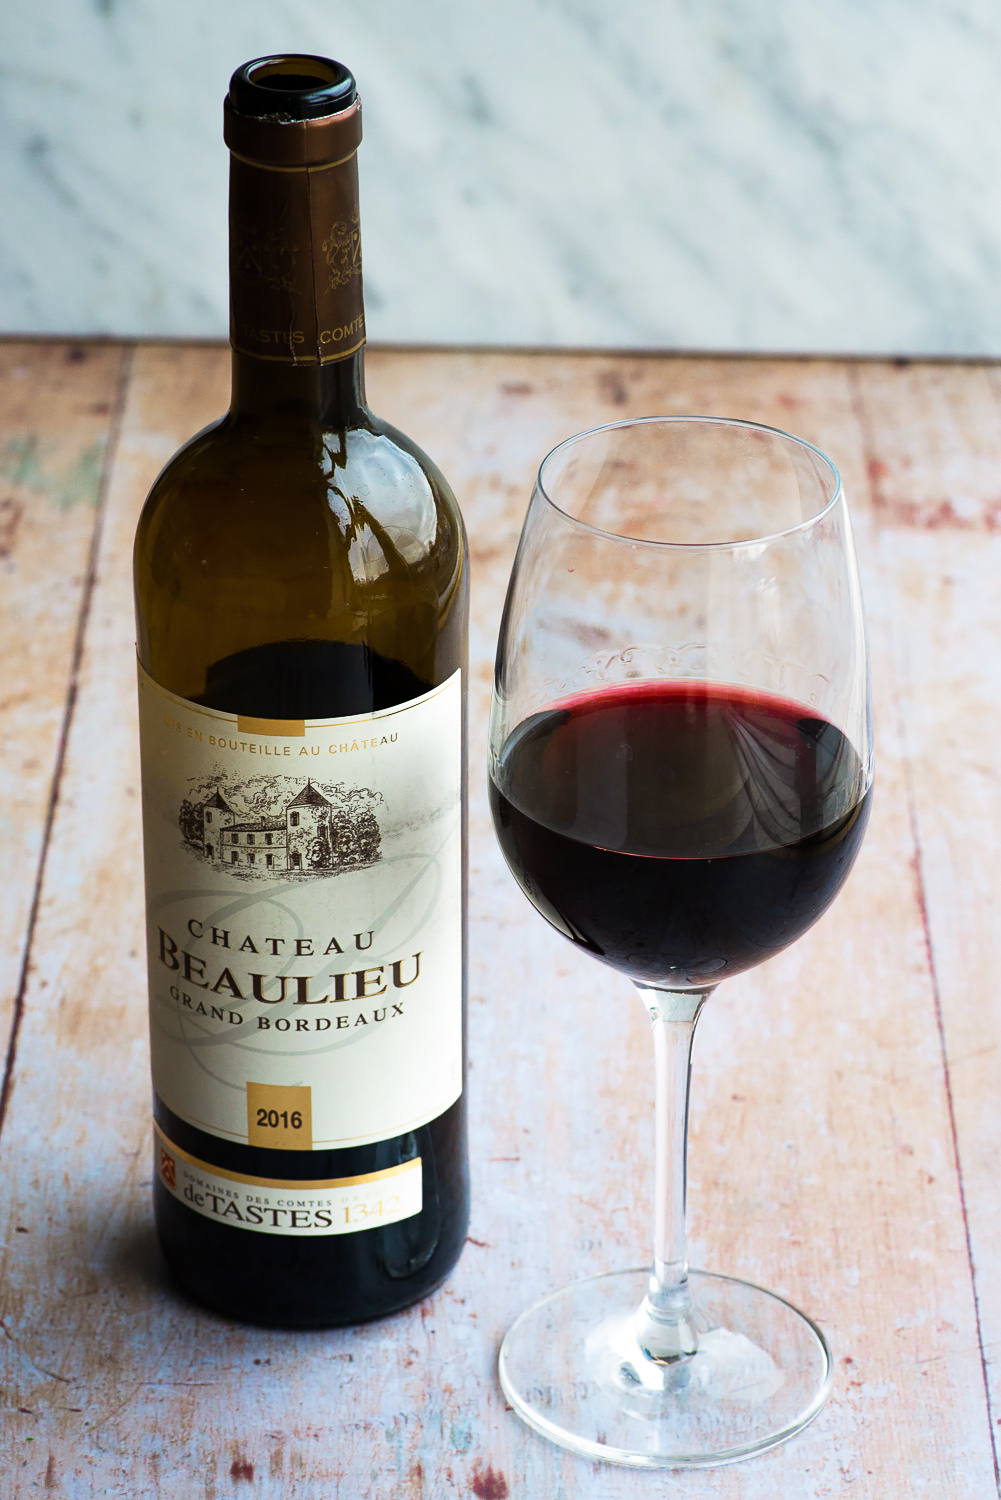 Chateau Beaulieu Grand Bordeaux wine | Millesima, a Bordeaux-based wine merchant withone of the most comprehensive selections of fines wines from everywhere in the world.